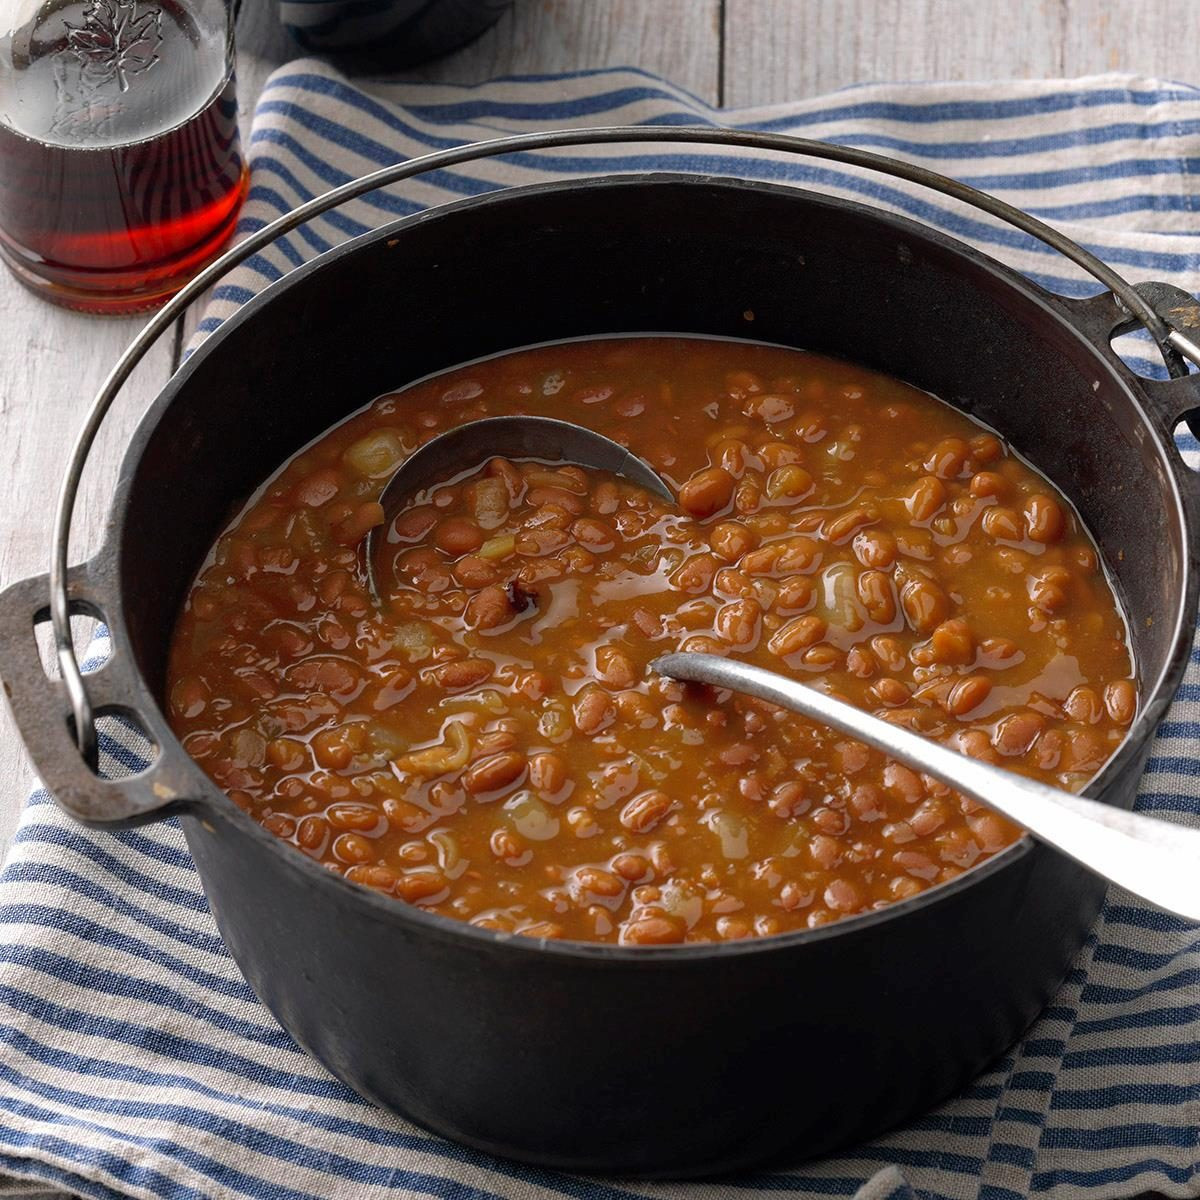 Easy Baked Beans Recipes: Simple Maple Baked Beans Recipe